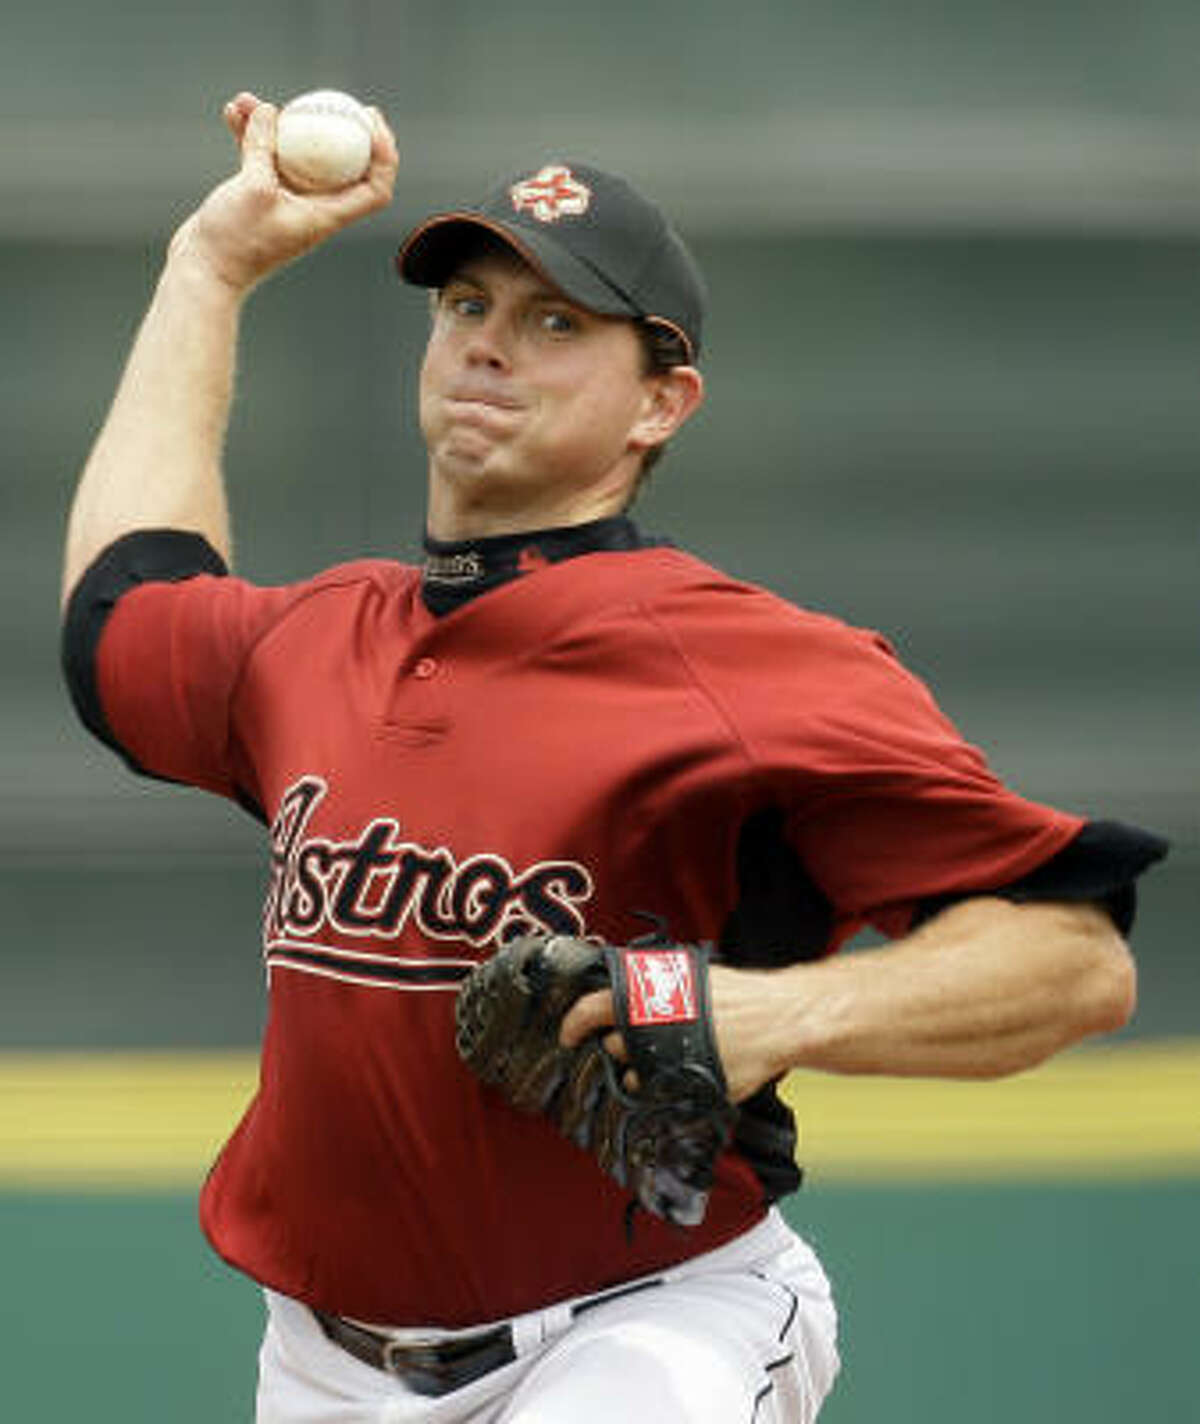 Astros pitcher Brian Moehler gave up two runs over six innings. Moehler had no strikeouts and no walks.